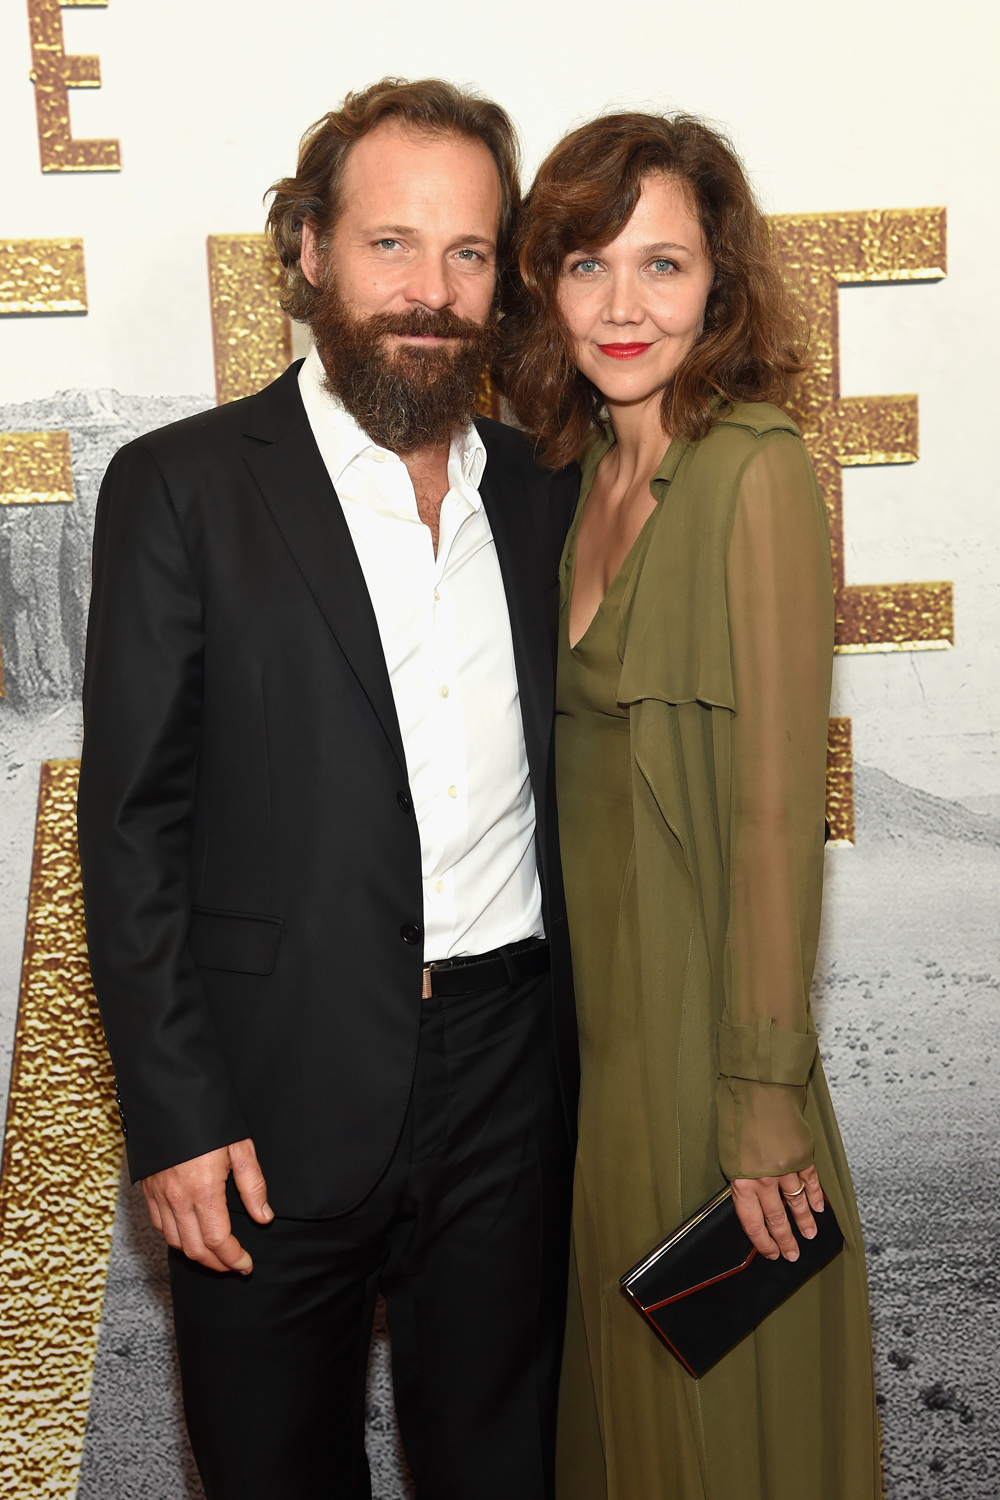 peter-sarsgaard-maggie-gyllenhaal-the-mganificent-seven-premiere-red-carpet-fashion-sally-lapointe-tom-lorenzo-site-1